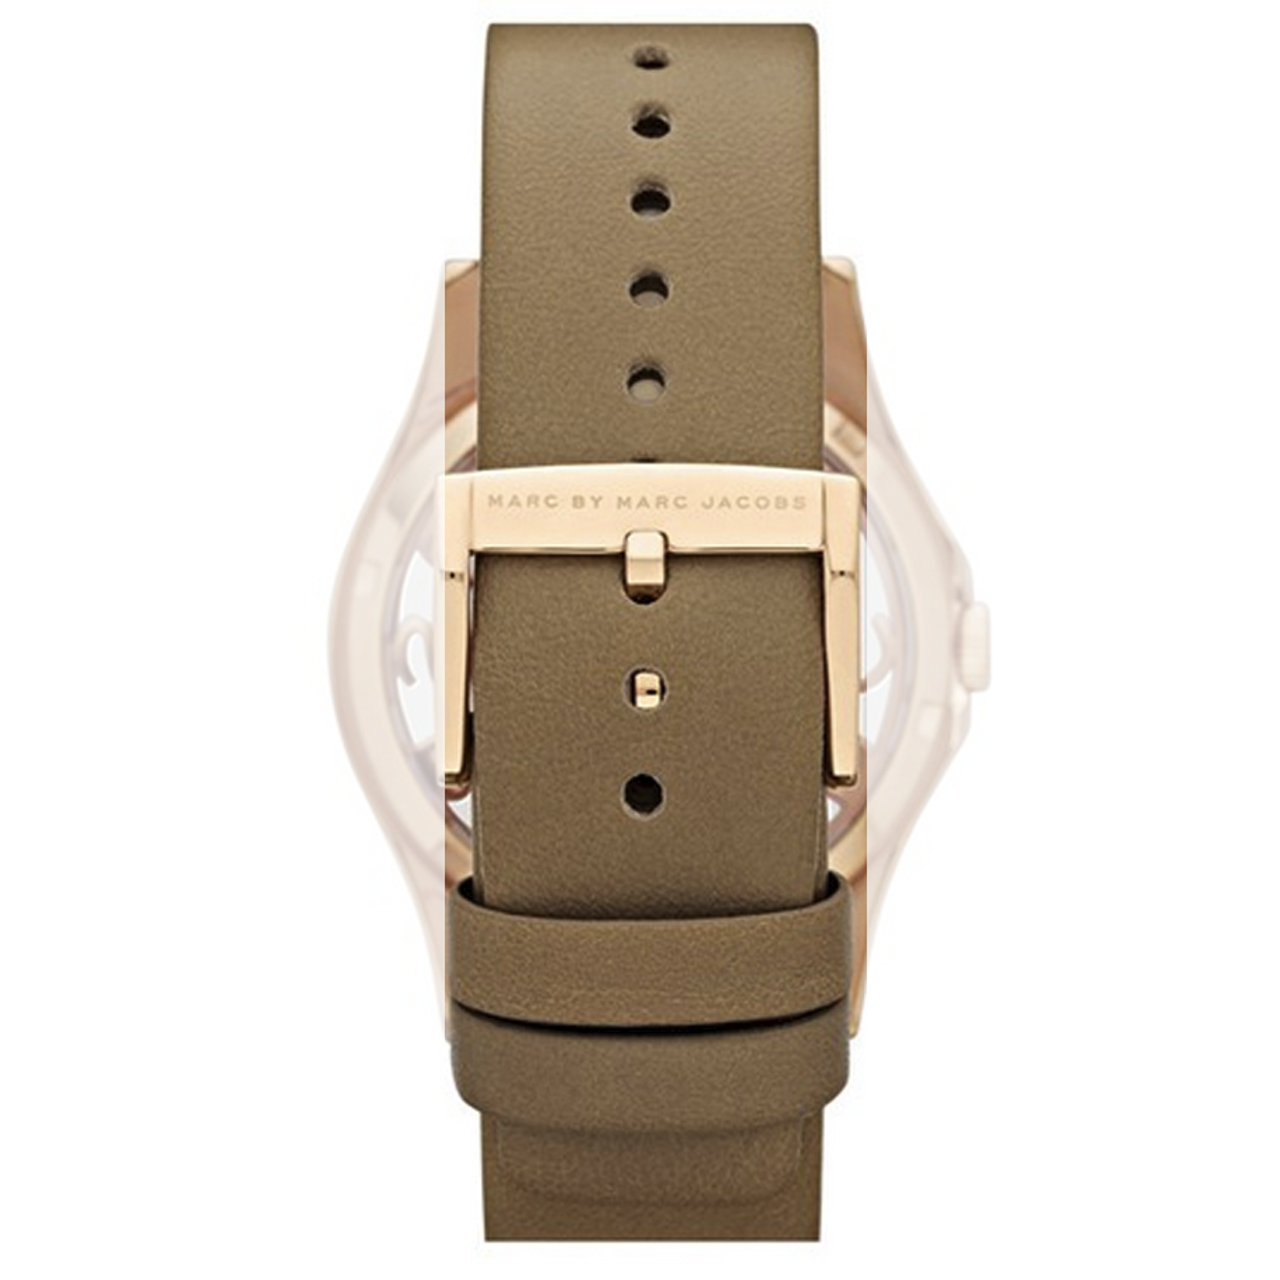 bbe636df9b1ee Marc Jacobs Genuine Replacement Watch Strap Beige Leather For ...